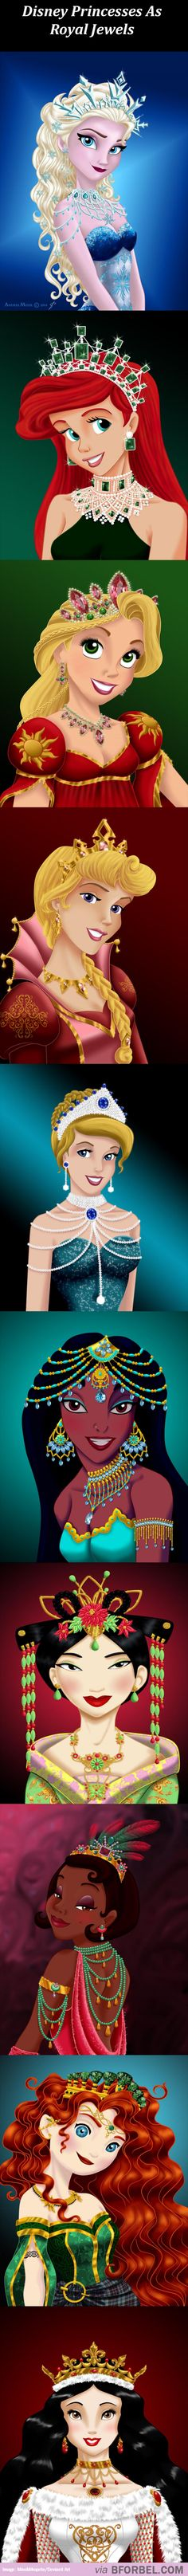 10 Disney Princesses With Their Royal Jewels